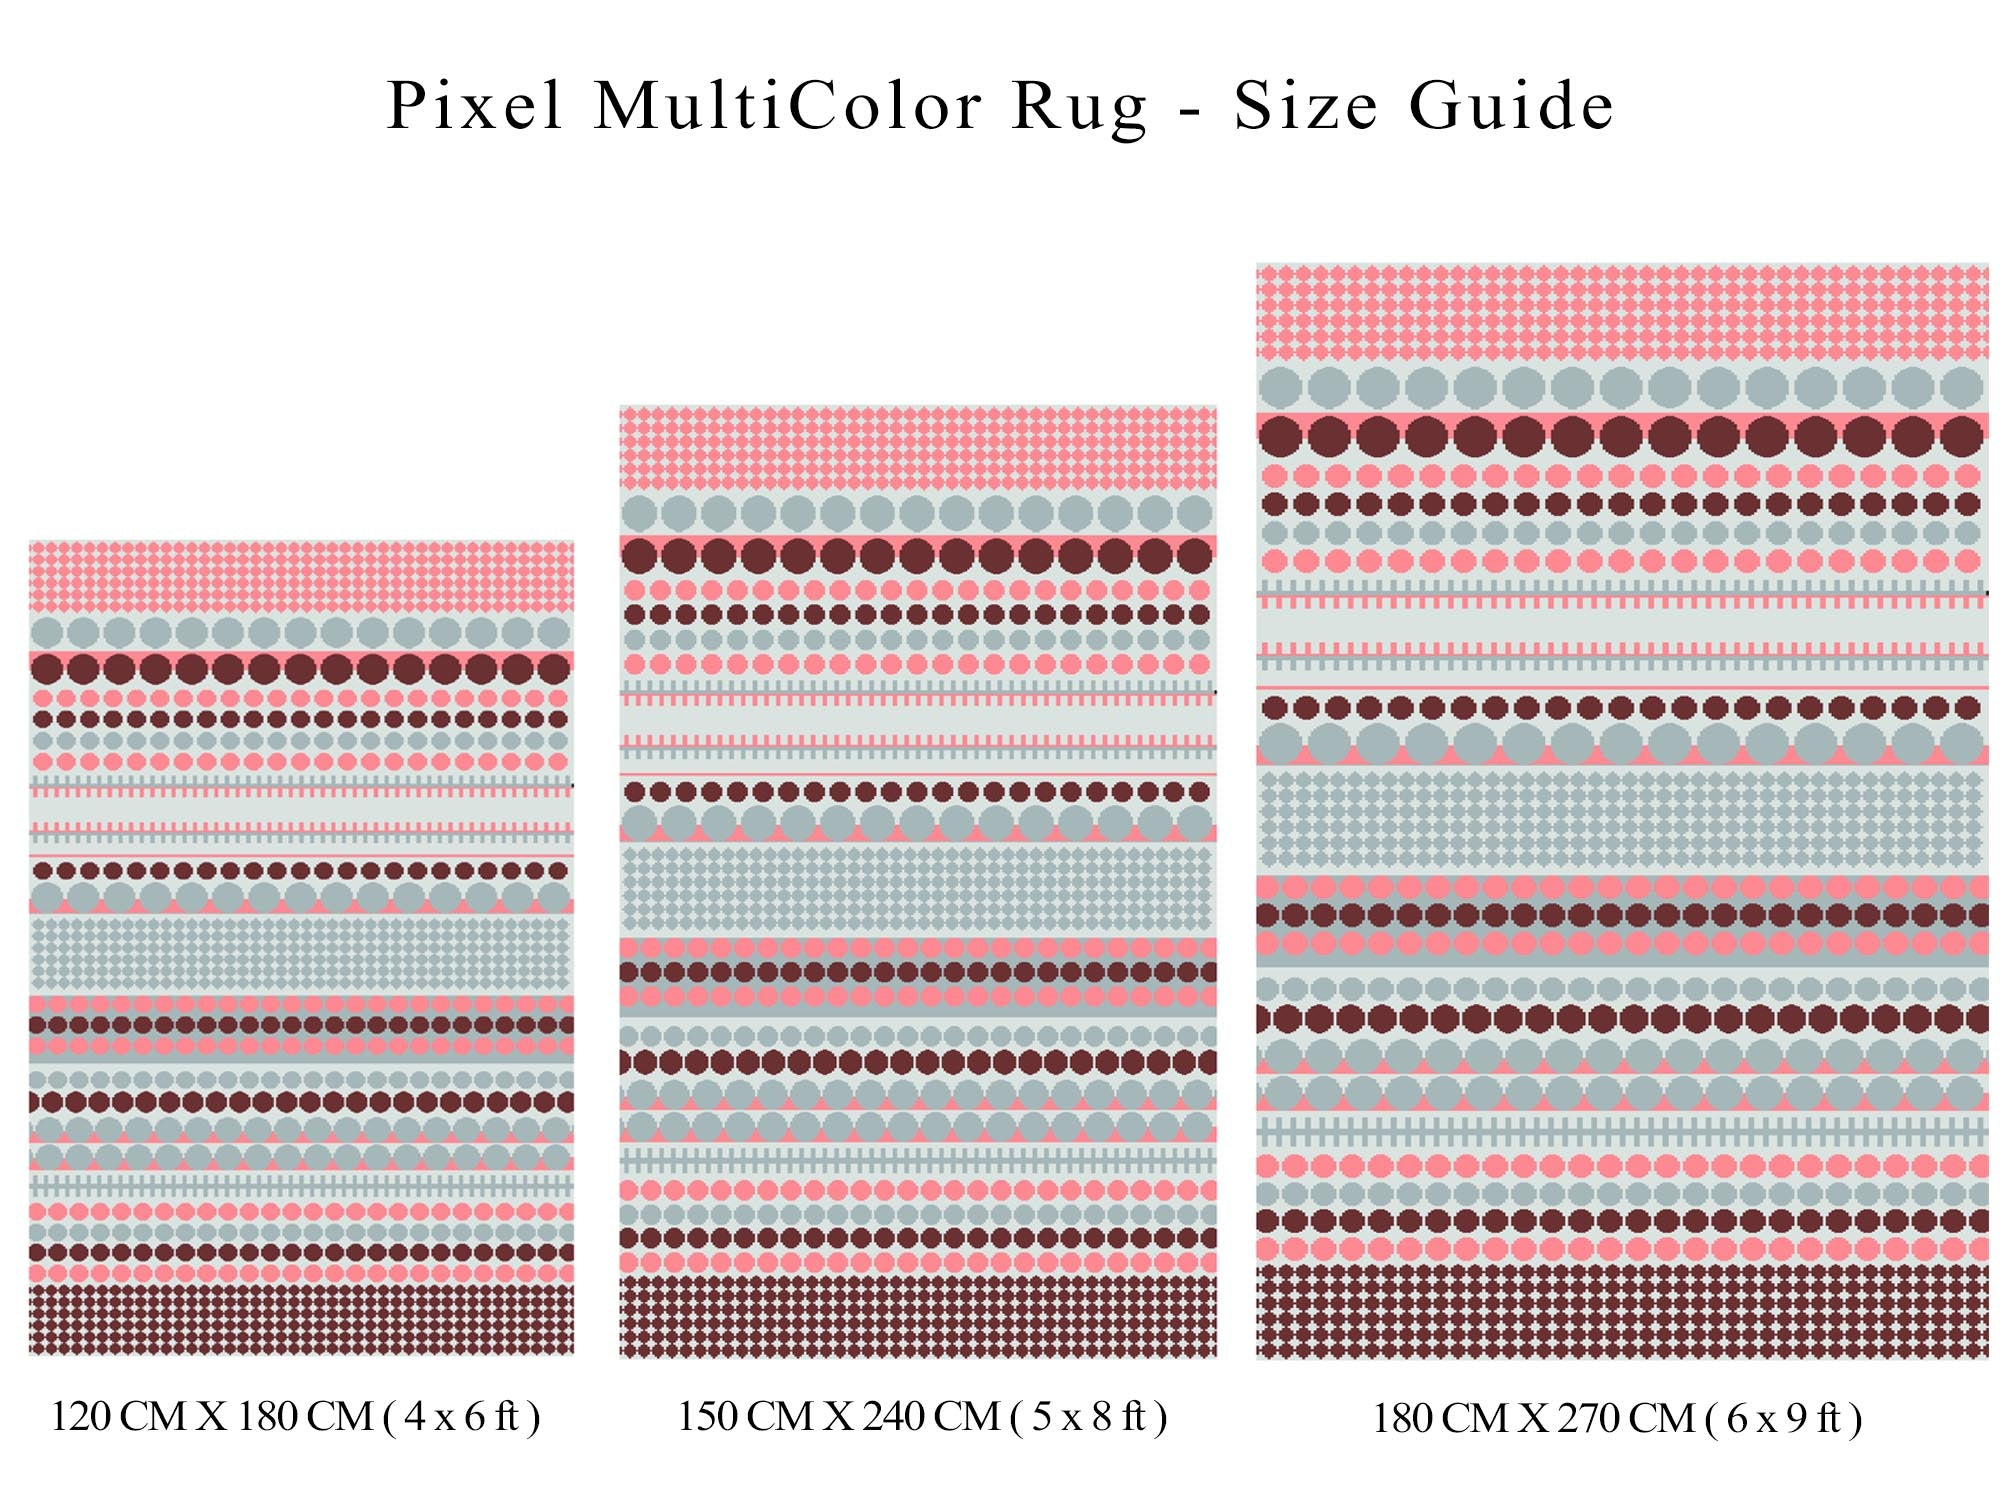 Pixel Outdoor Recycled Plastic Rug (Multicolor)